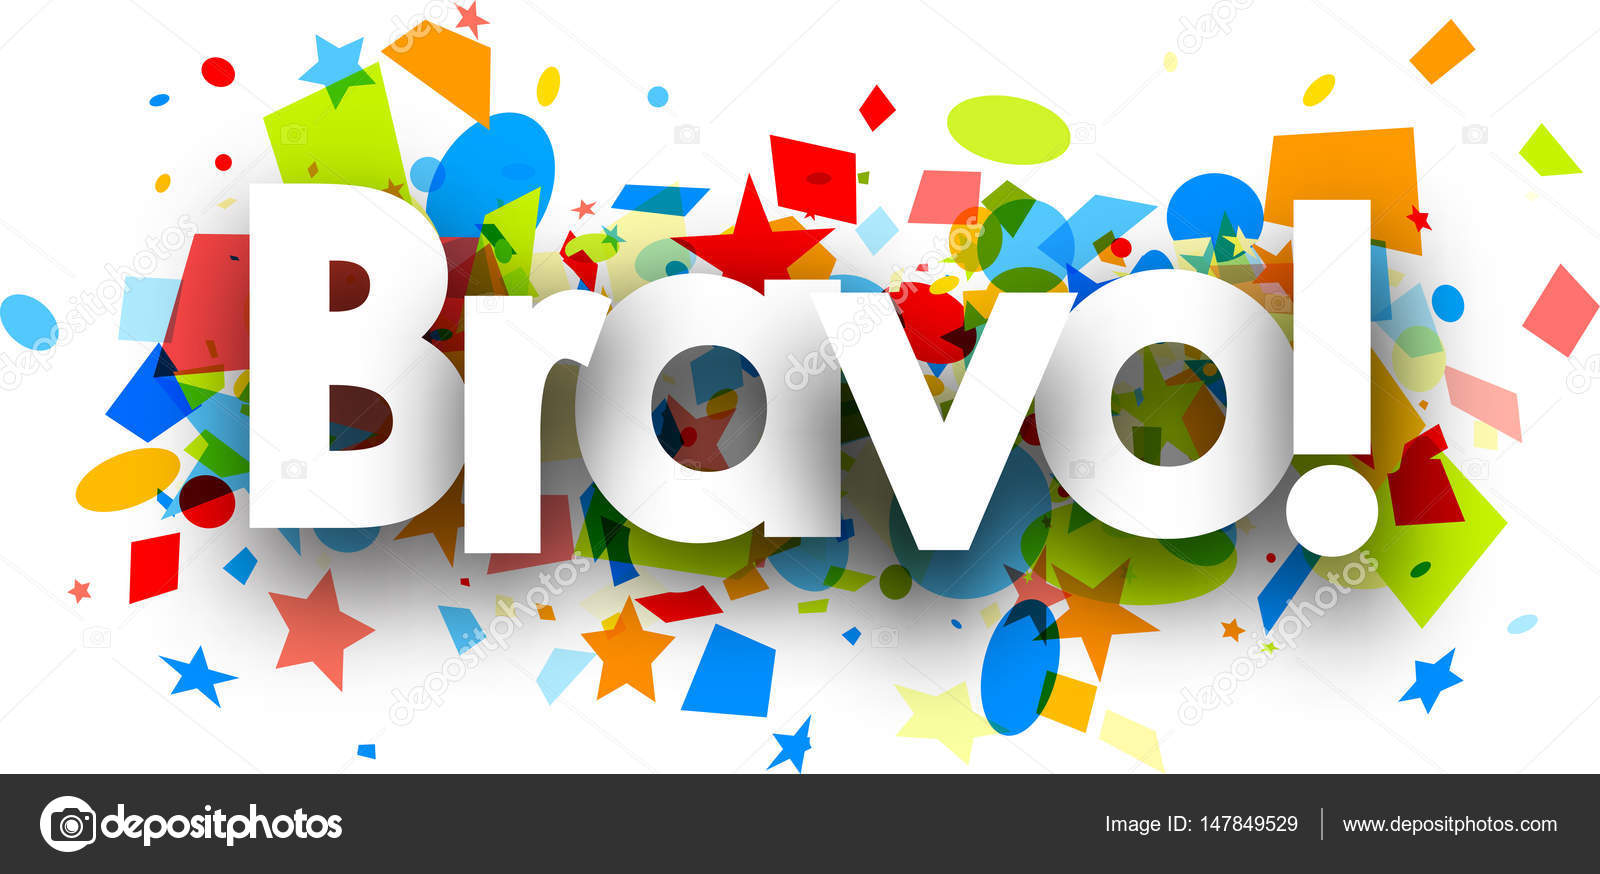 Image Bravo bravo background with colorful confetti — stock vector © maxborovkov